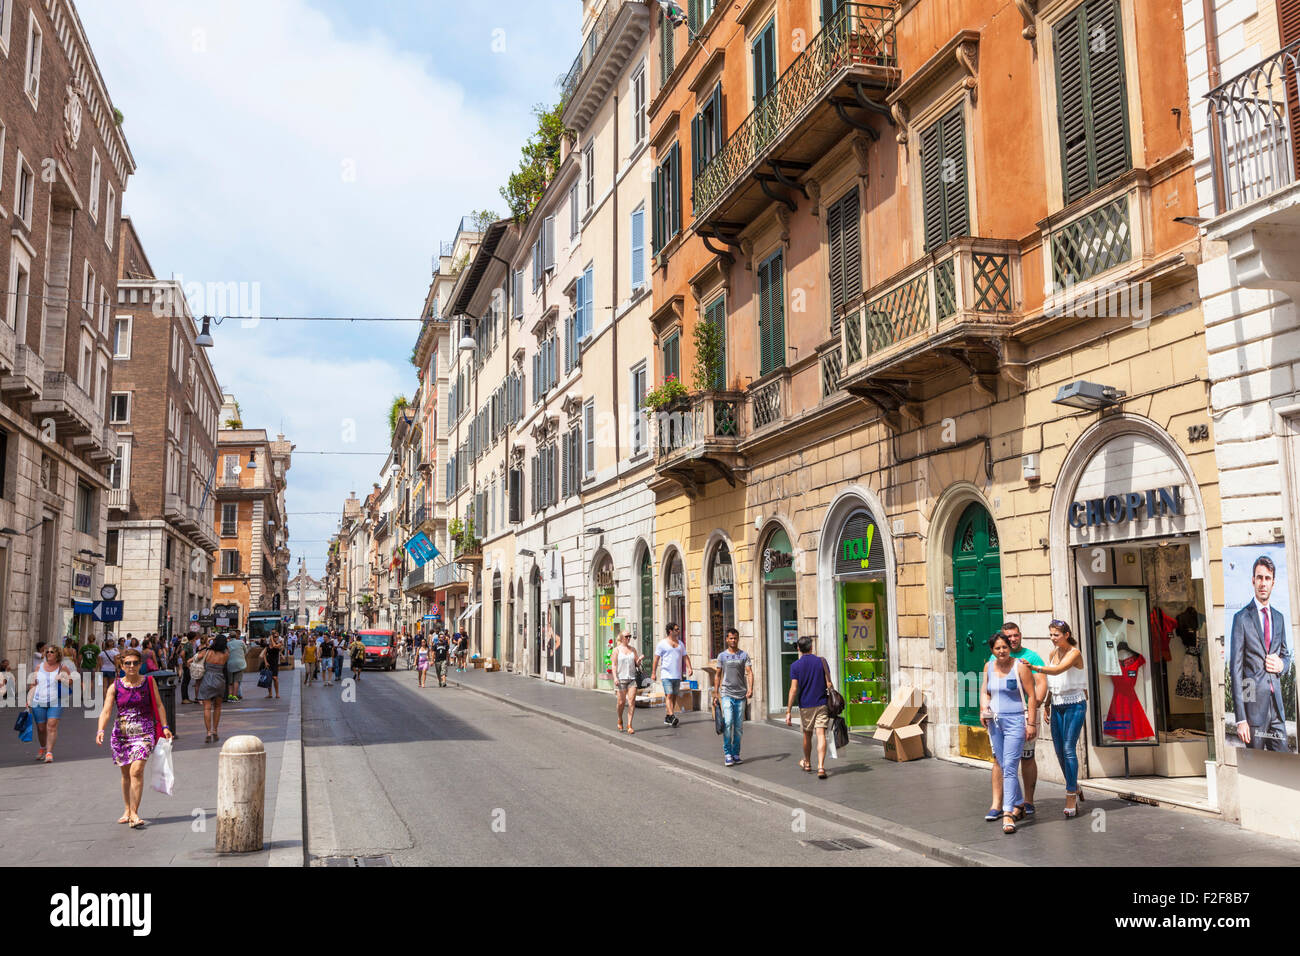 people shopping in the shops in the via del corso rome